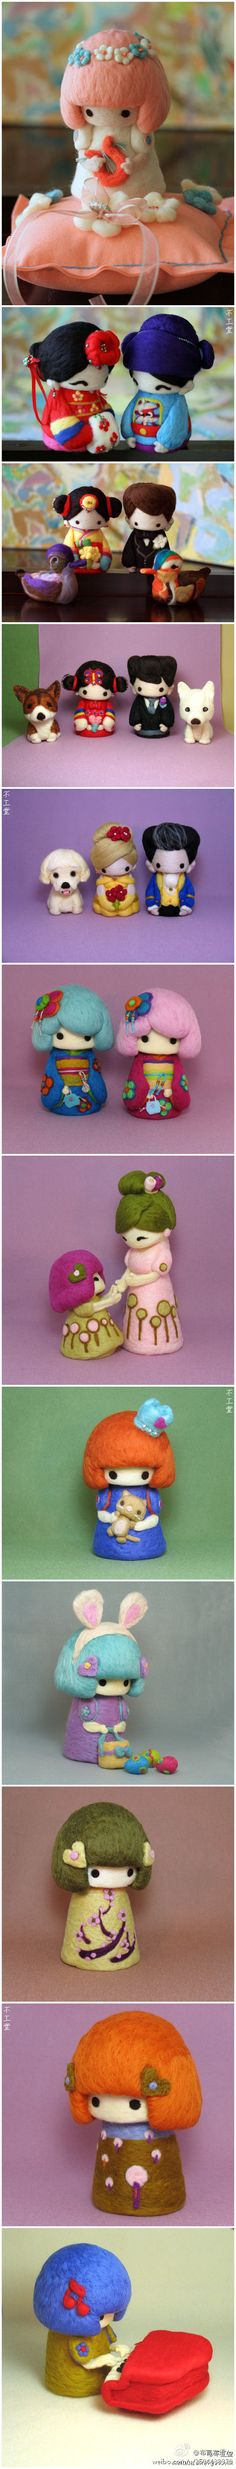 felt creations ♥ Felt Wool Doll